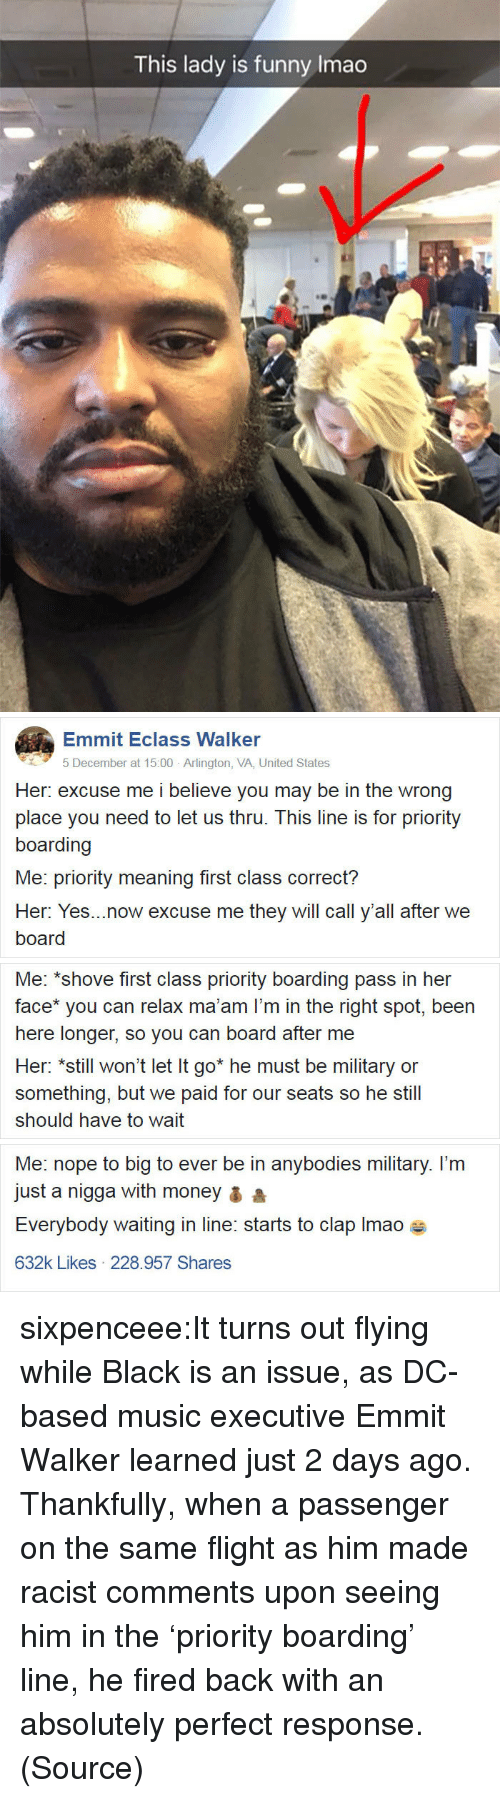 Funny, Money, and Music: This lady is funny Imao   Emmit Eclass Walker  5 December at 15:00 Arlington, VA, United States  Her: excuse me i believe you may be in the wrong  place you need to let us thru. This line is for priority  boarding  Me: priority meaning first class correct?  Her: Yes...now excuse me they will call y'all after we  board   Me: *shove first class priority boarding pass in her  face* you can relax ma'am l'm in the right spot, been  here longer, so you can board after me  Her: *still won't let It go* he must be military or  something, but we paid for our seats so he still  should have to wait   Me: nope to big to ever be in anybodies military. I'm  just a nigga with money a  Everybody waiting in line: starts to clap Imaoe  632k Likes 228.957 Shares sixpenceee:It turns out flying while Black is an issue, as DC-based music executive Emmit Walker learned just 2 days ago. Thankfully, when a passenger on the same flight as him made racist comments upon seeing him in the 'priority boarding' line, he fired back with an absolutely perfect response. (Source)